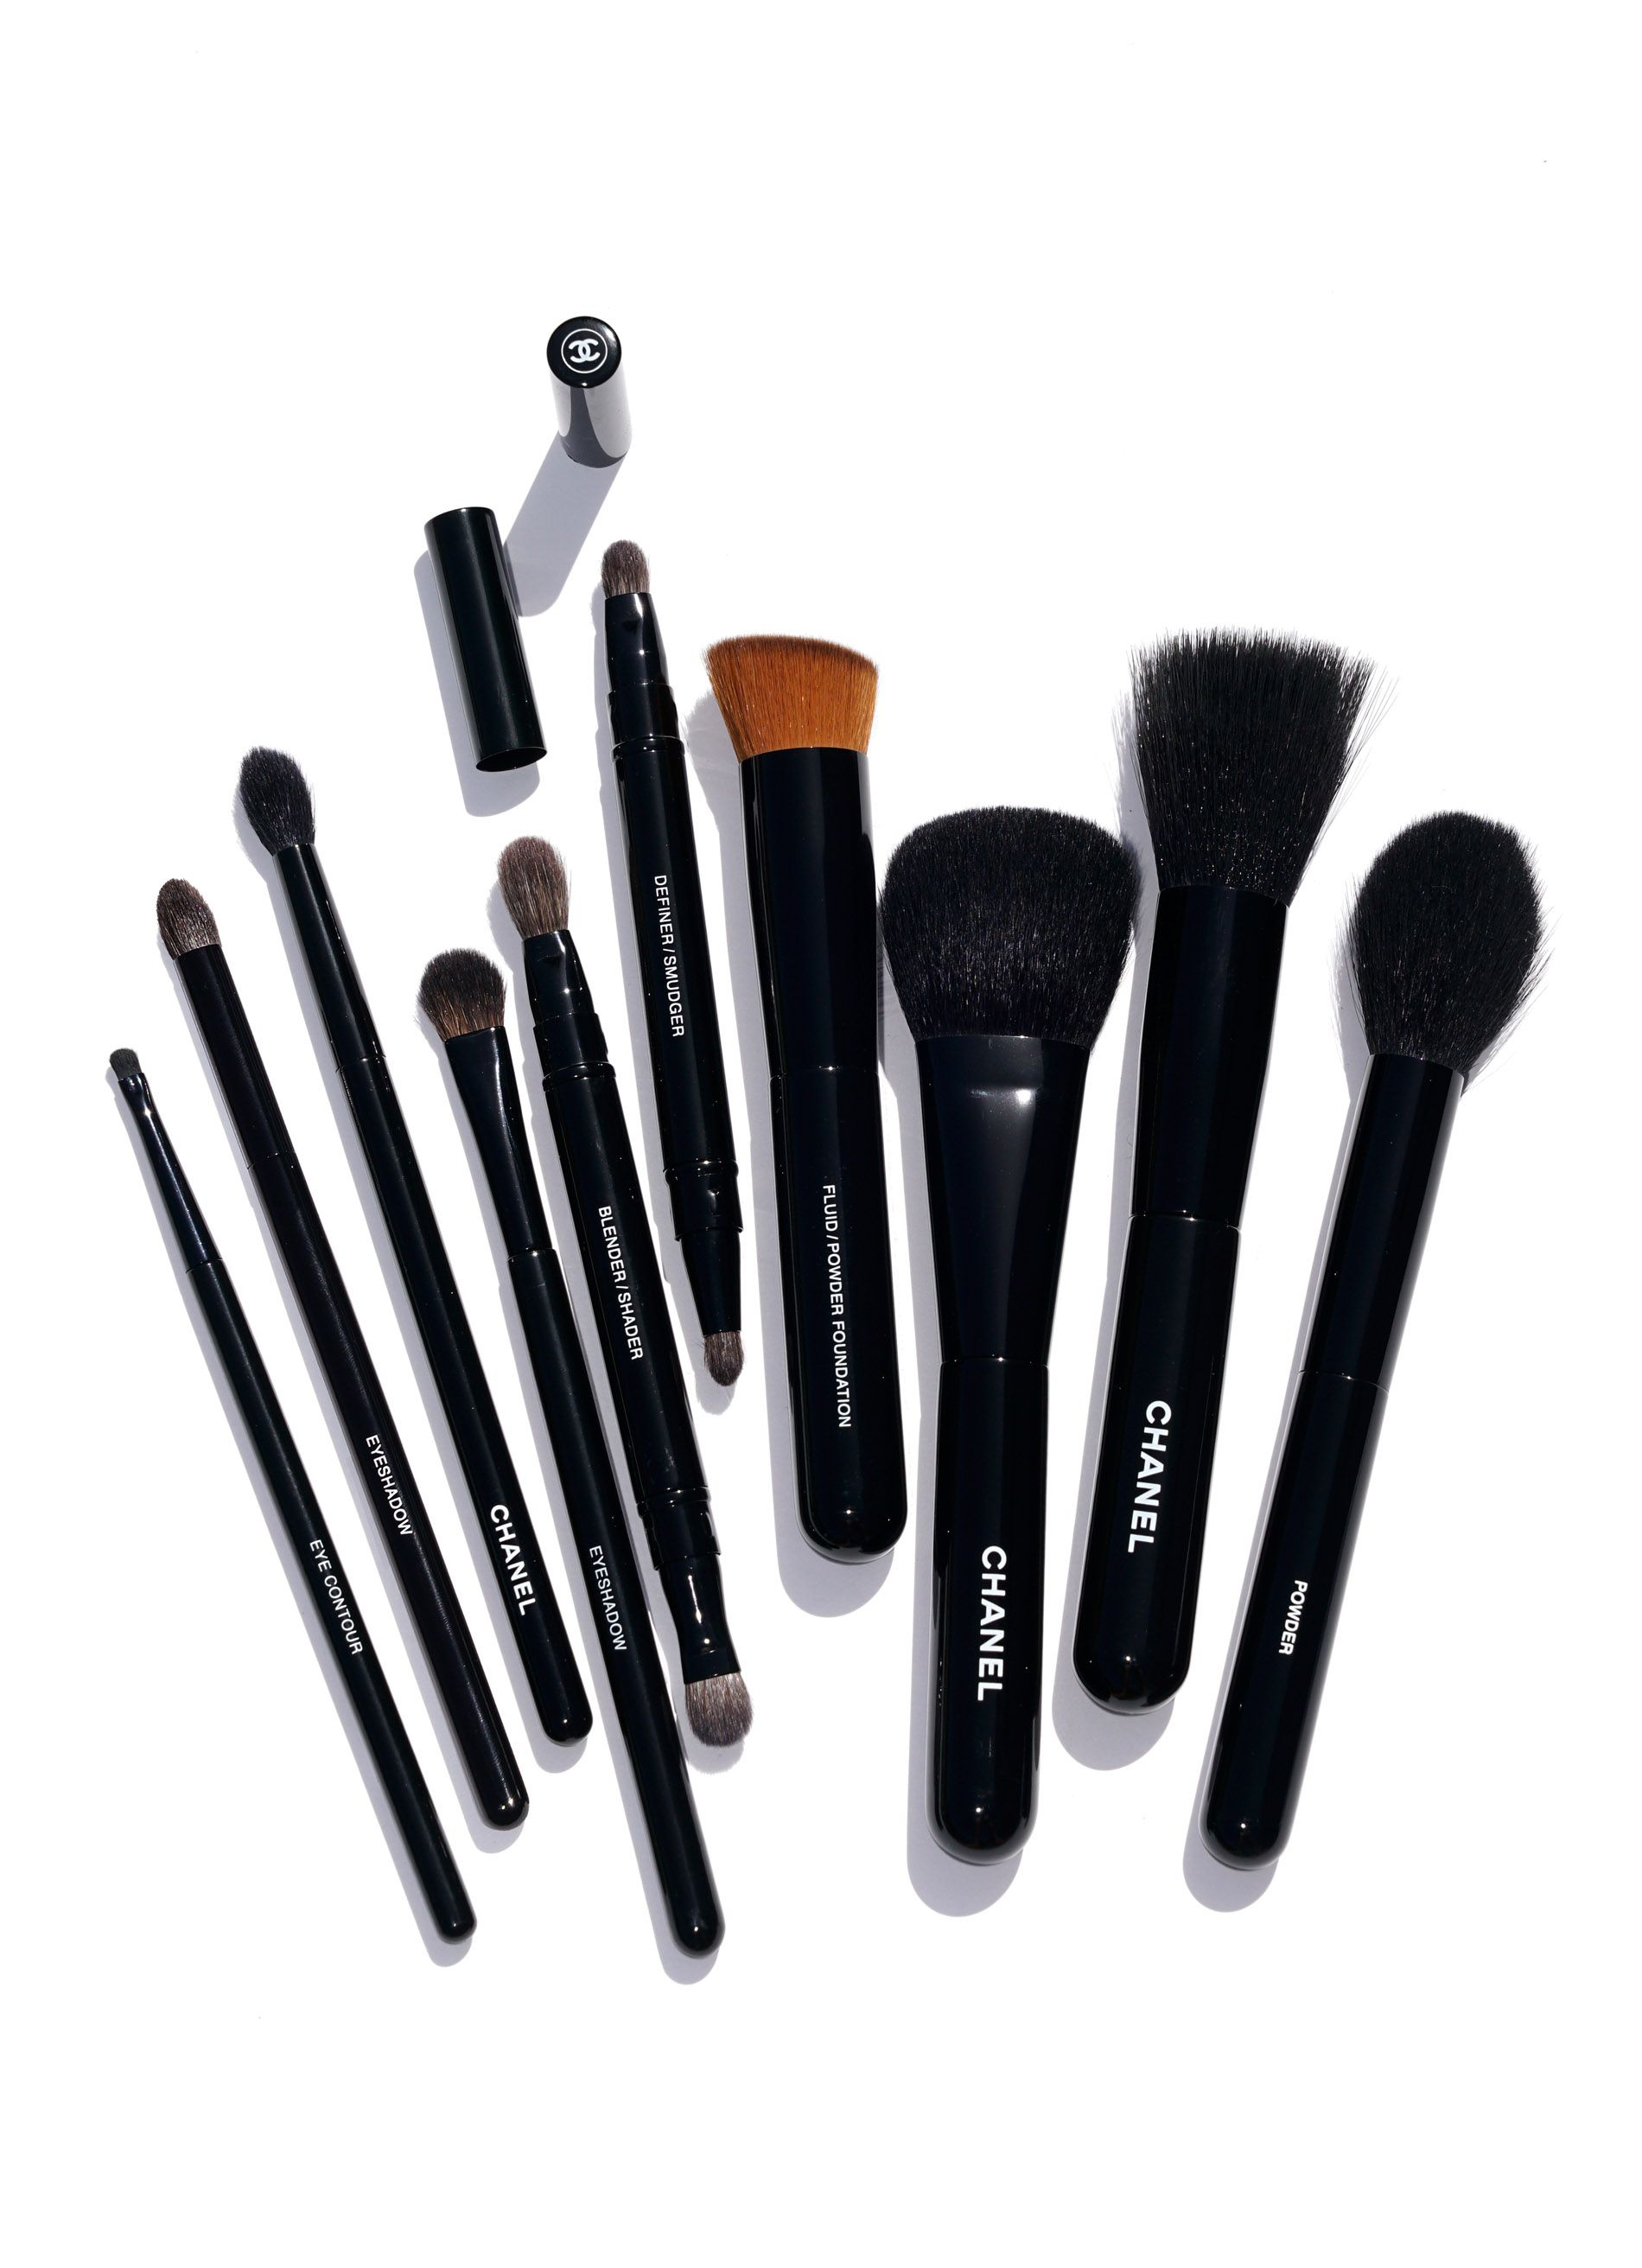 Chanel Makeup Brushes New Design Chanel makeup, Makeup